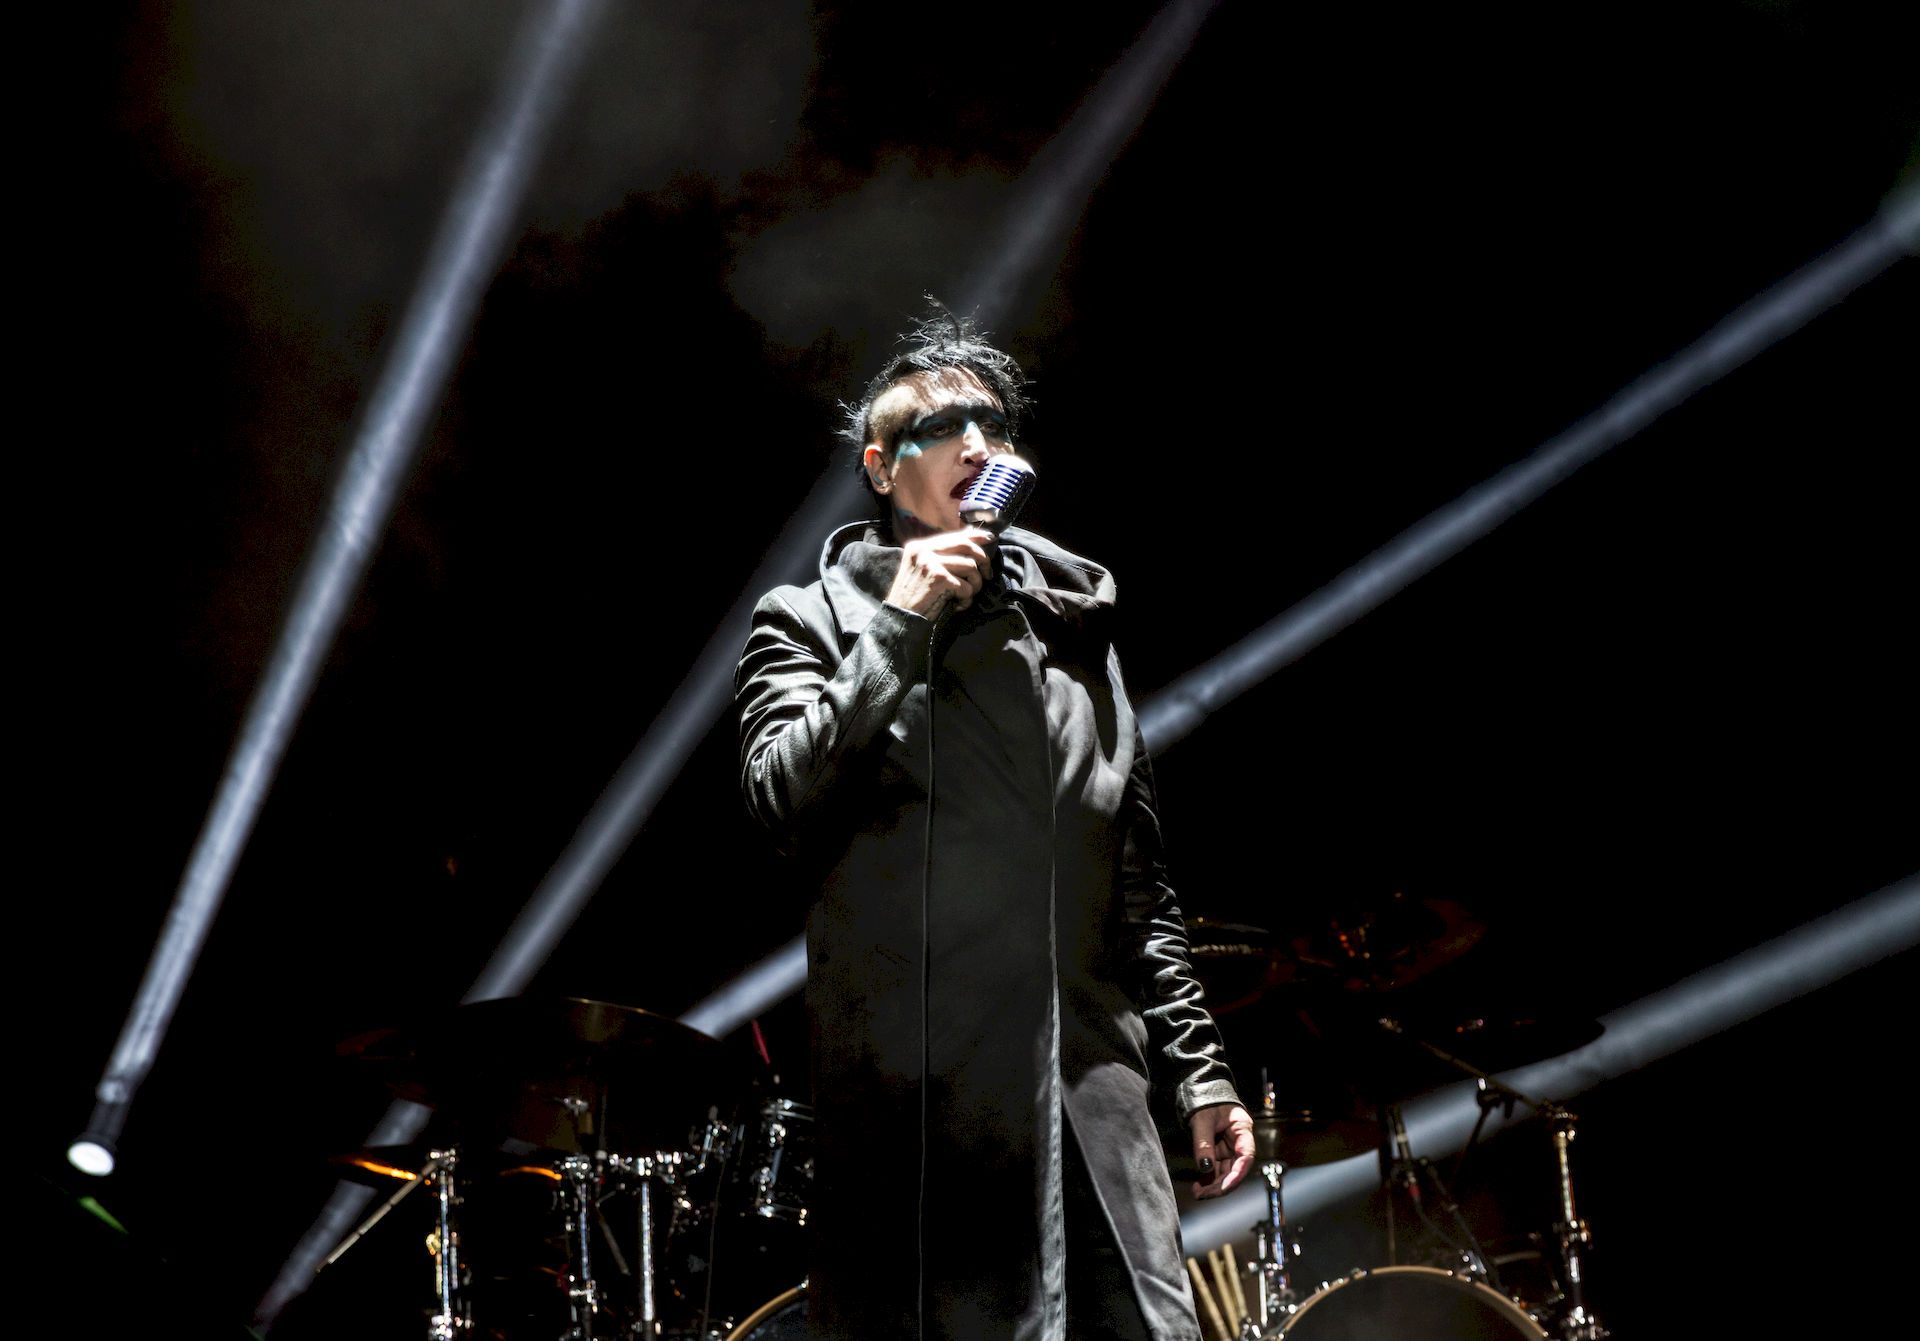 Photo of Marilyn Manson: American rock musician and actor